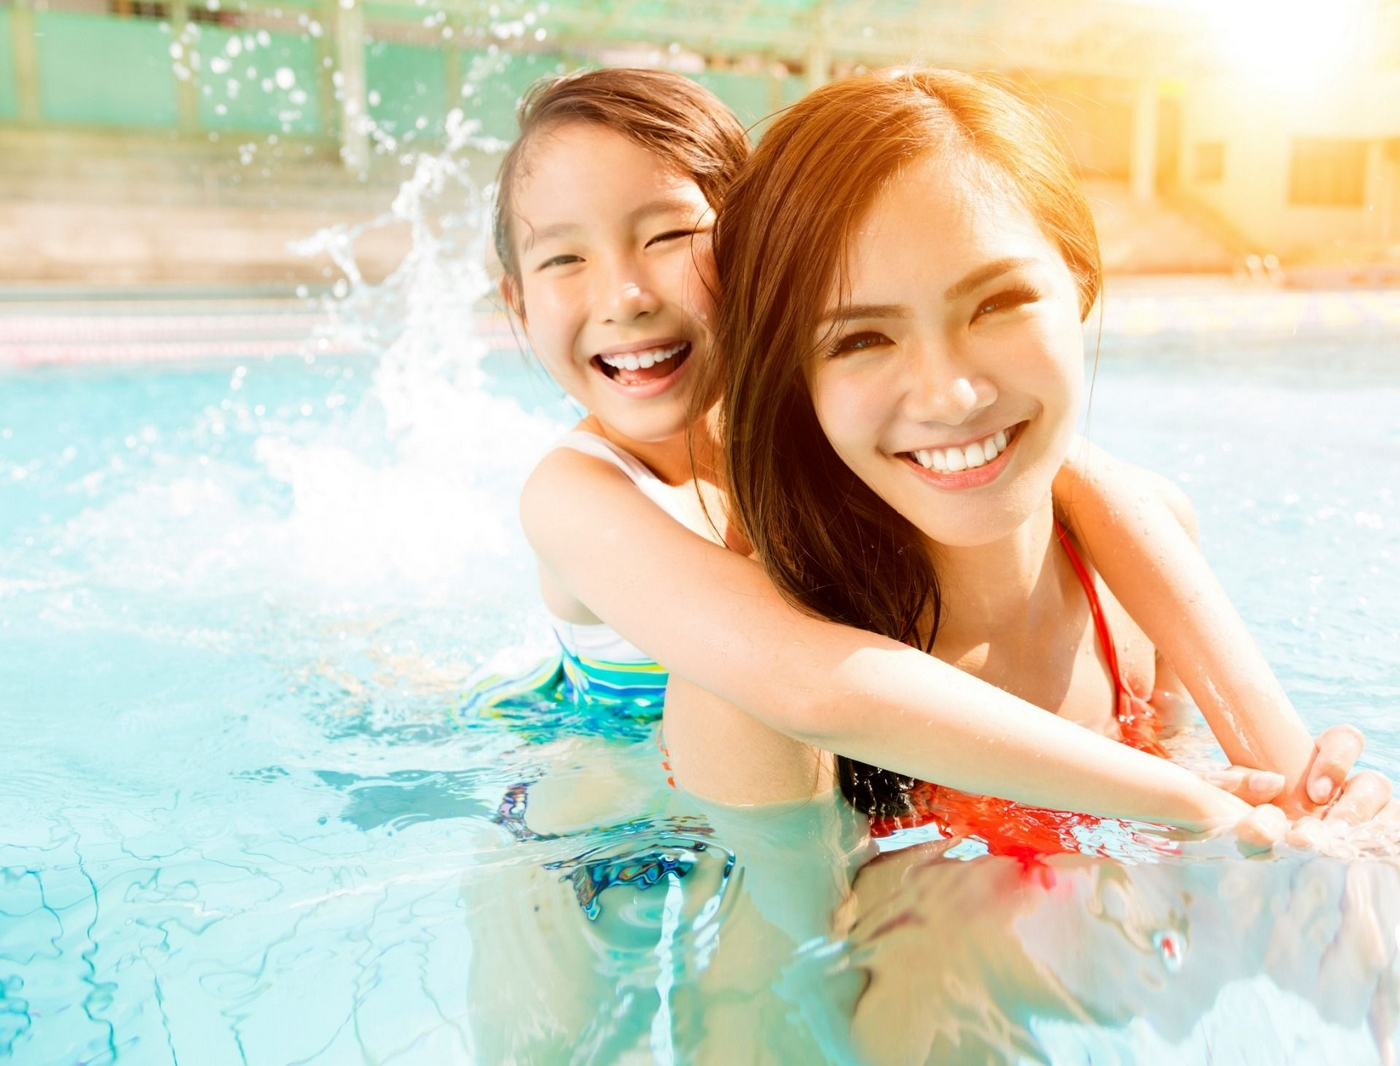 Woman and child in swimming pool